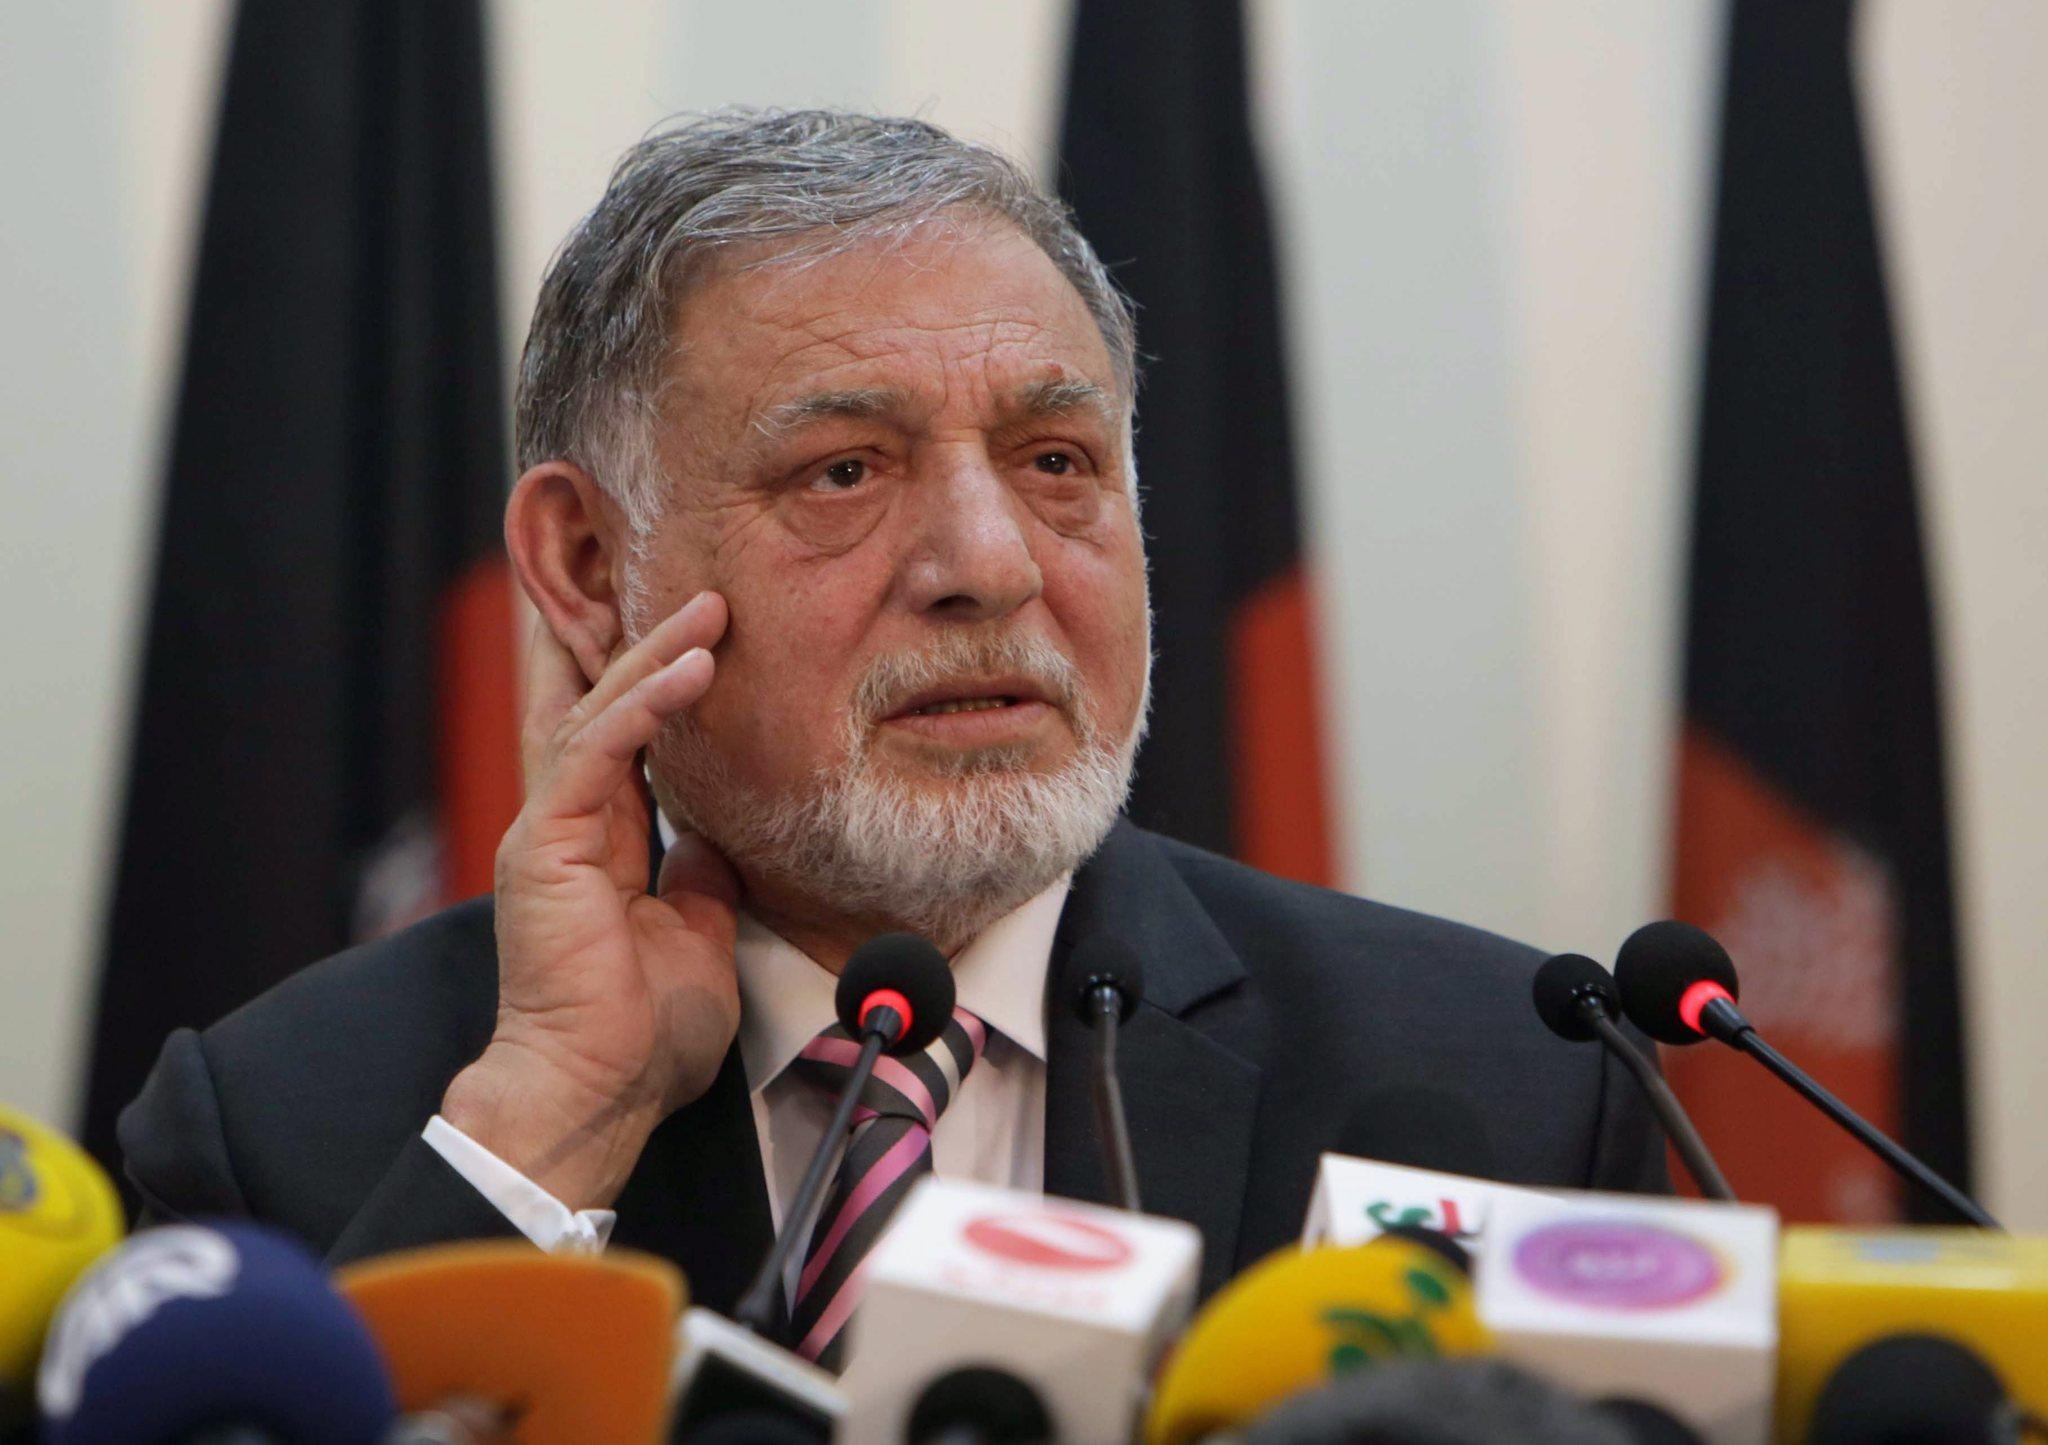 Ahmad Yusuf Nuristani, head of the Independent Election Commission, announces result of the first round of Afghanistan's presidential vote in Kabul on Saturday.